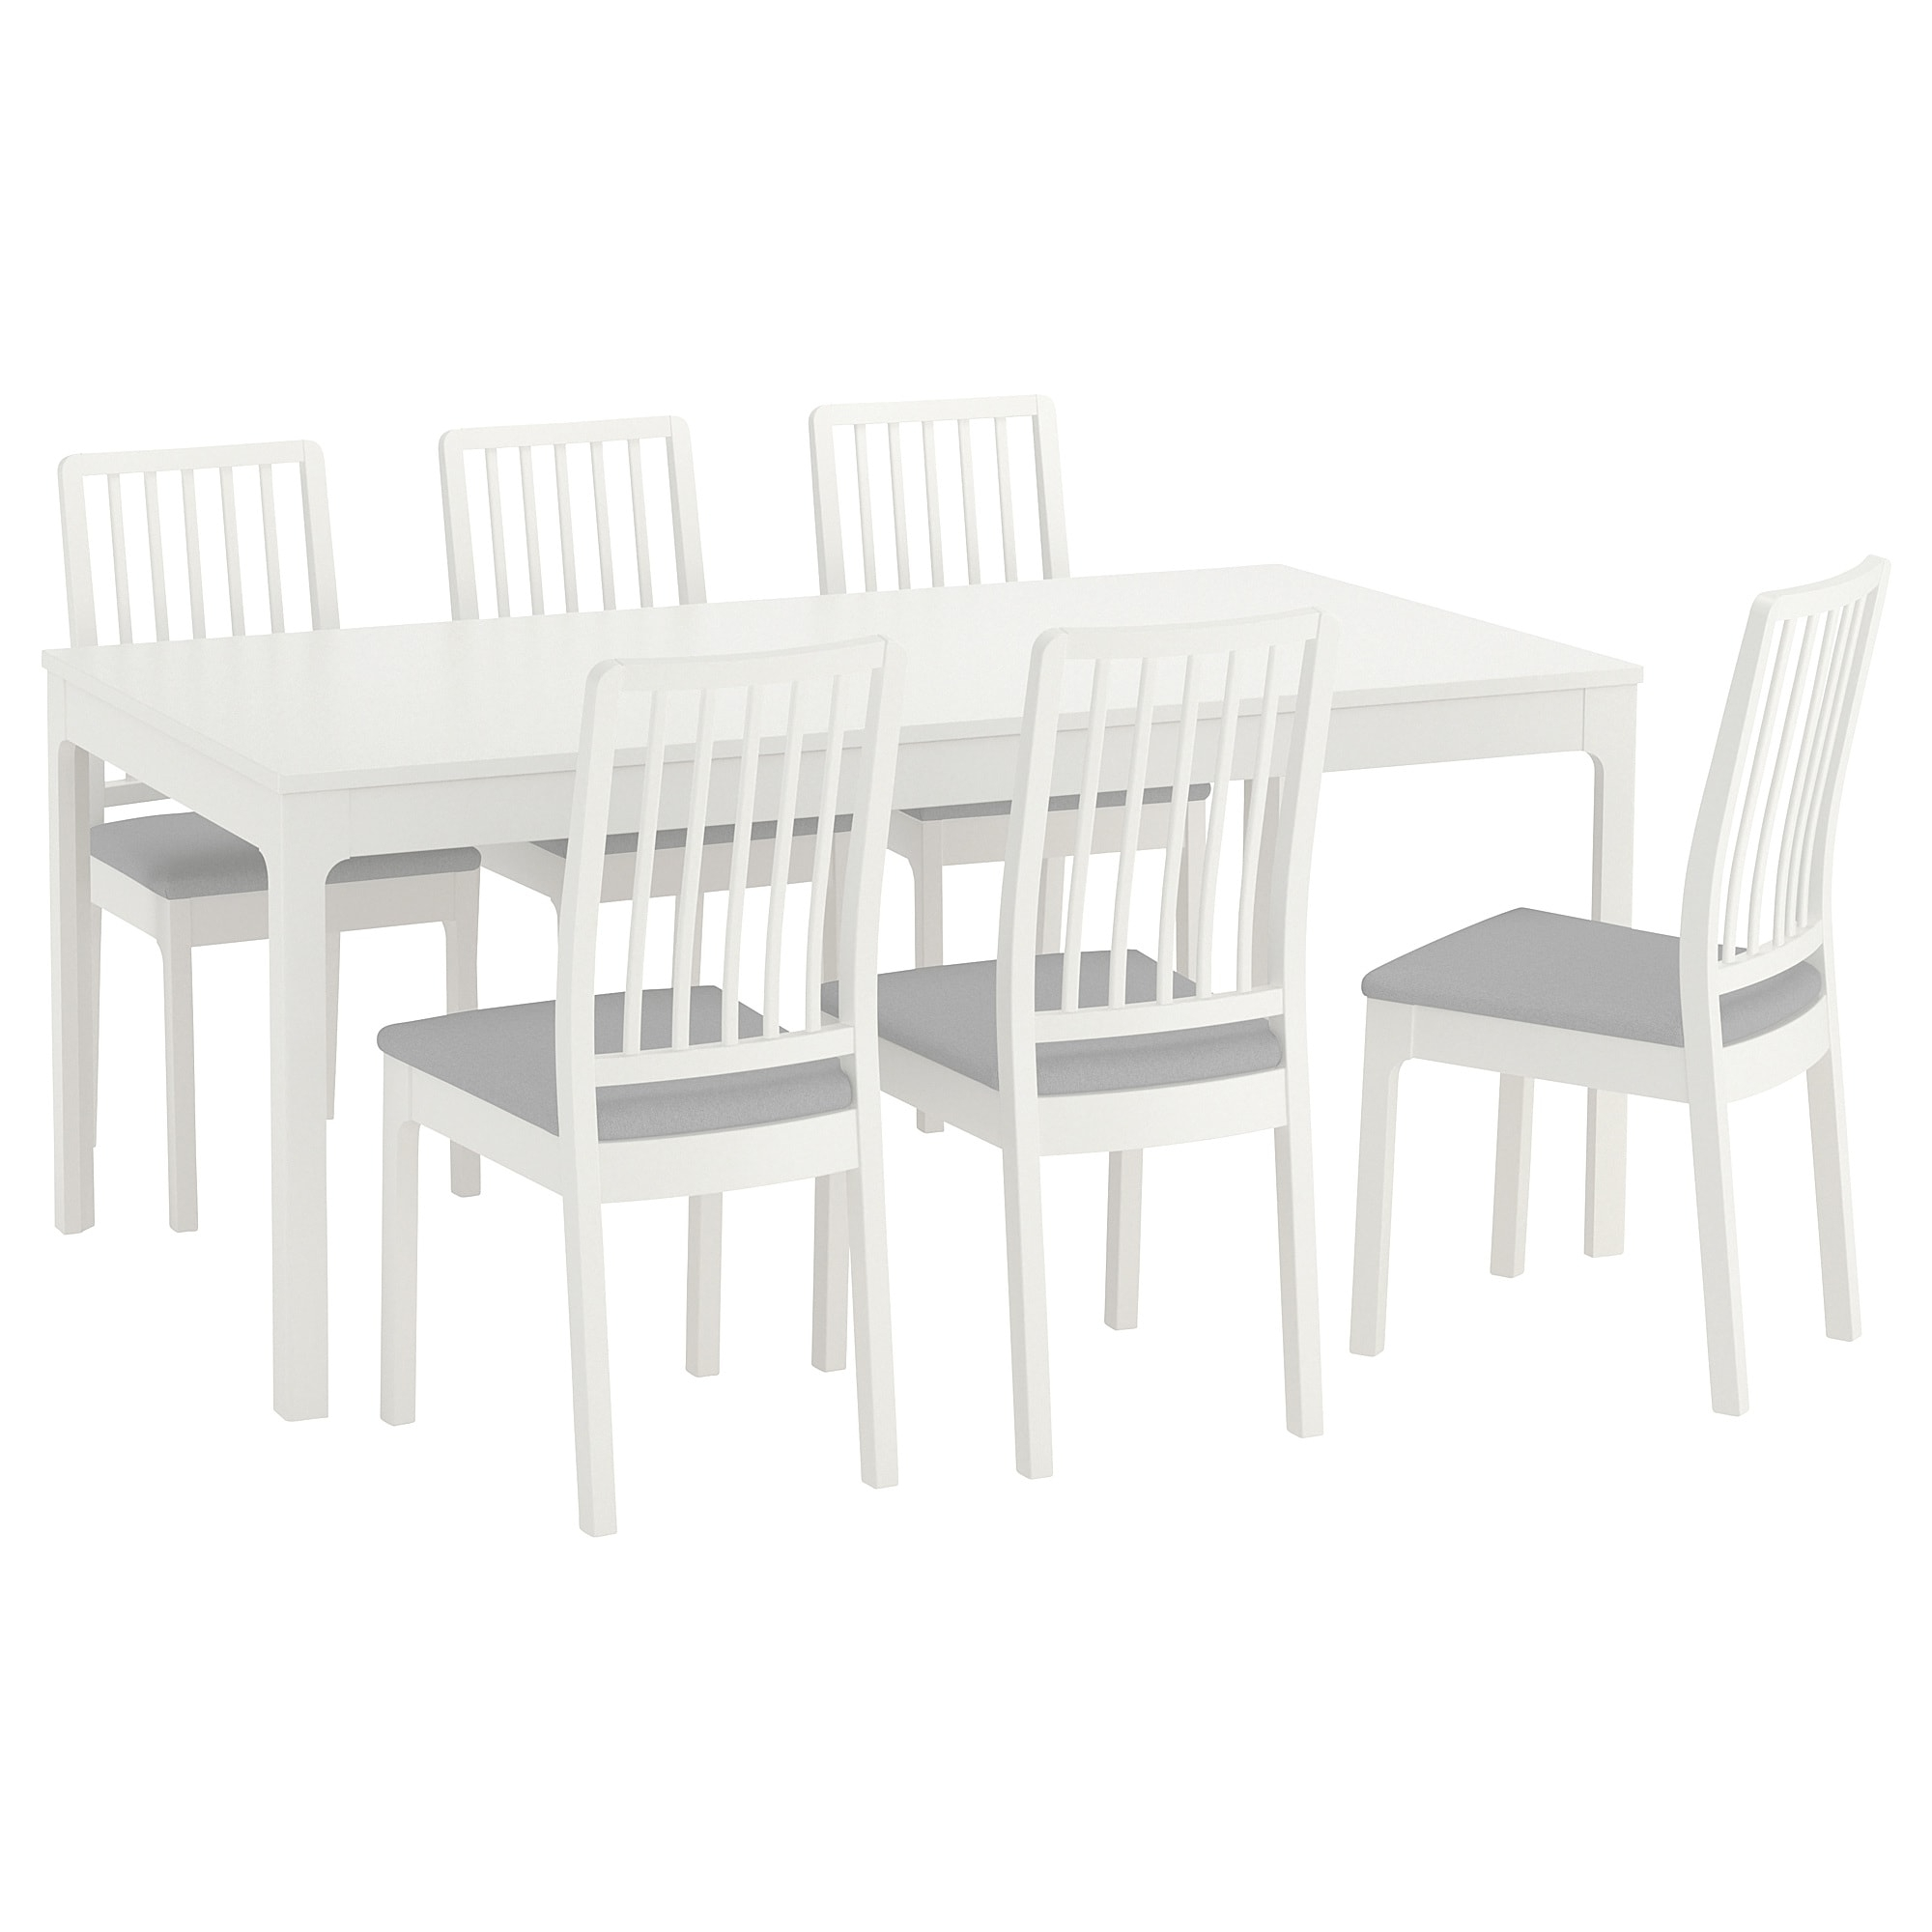 Helms 6 Piece Rectangle Dining Sets with Well known Chairs, Stools & Benches - Ikea